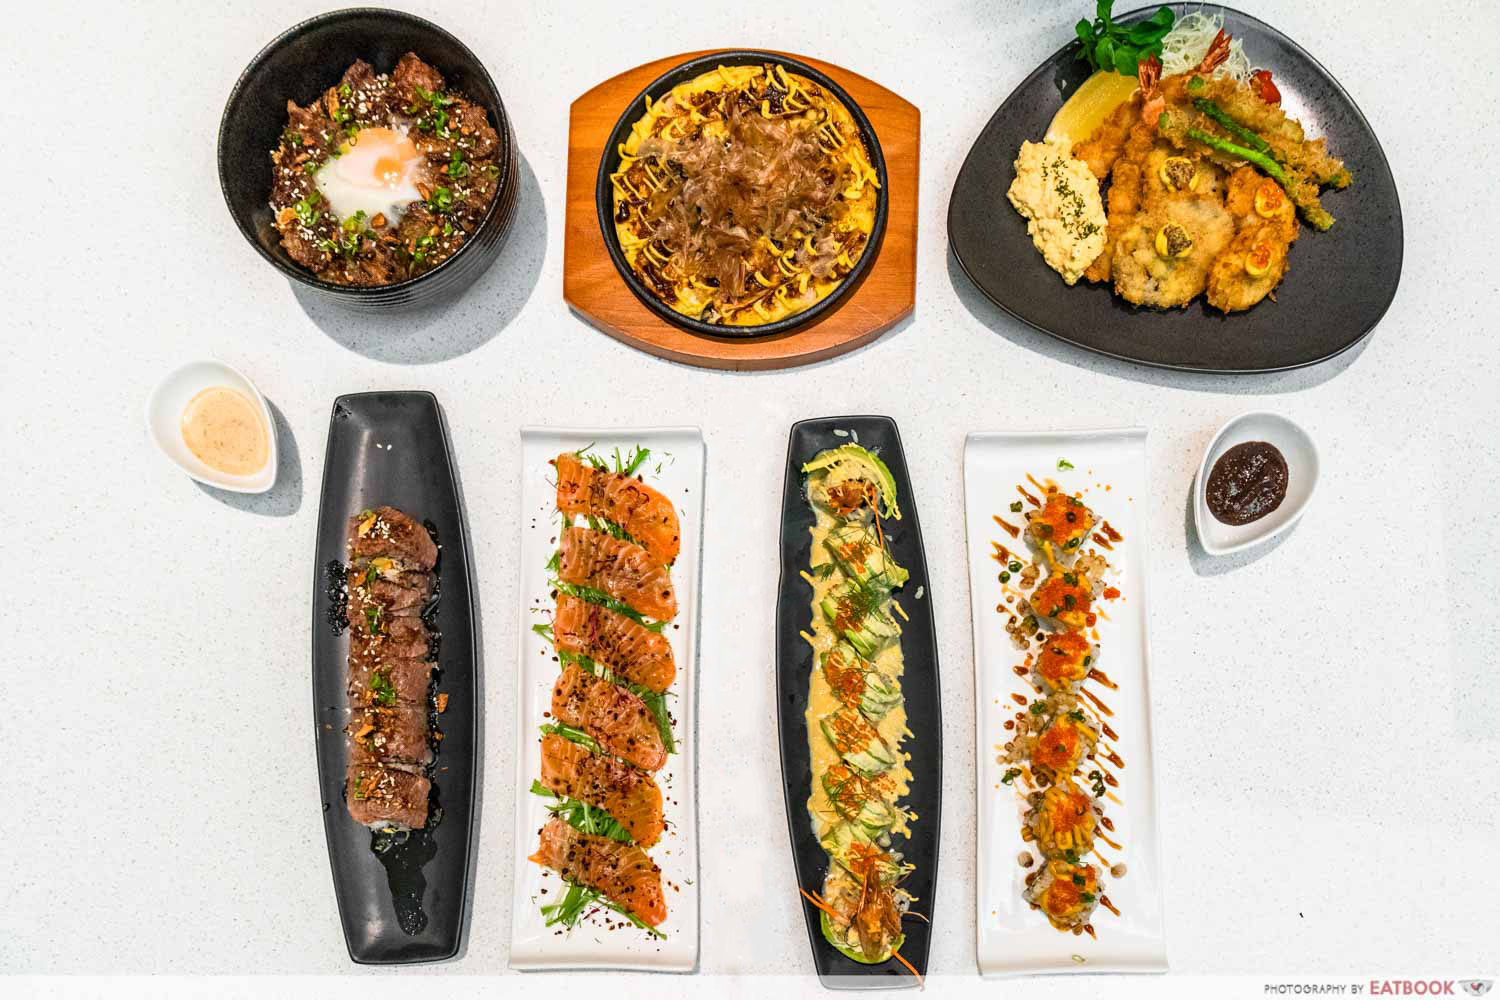 New cafes and restaurants in May 2021 - Tsuta Japanese Dining